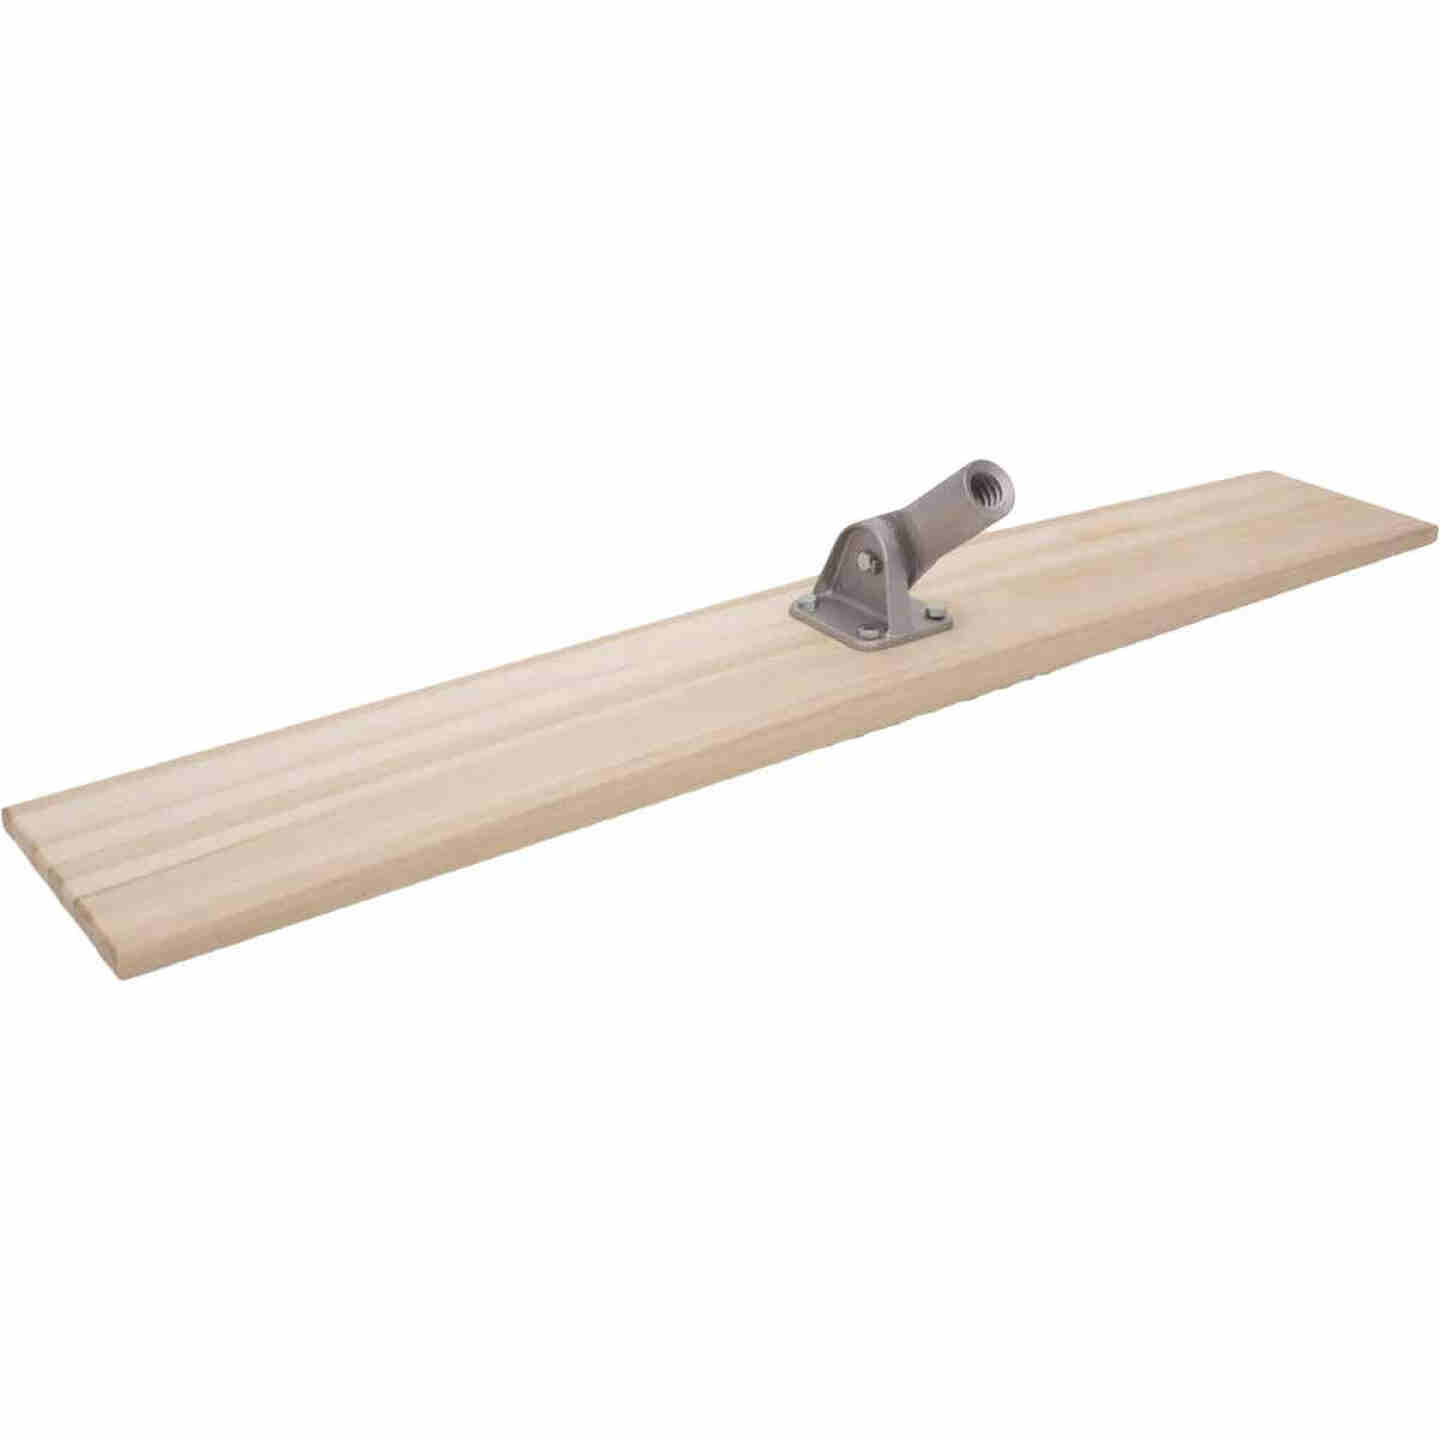 Marshalltown 8 In. x 48 In. Straight End Wood Bull Float Image 1